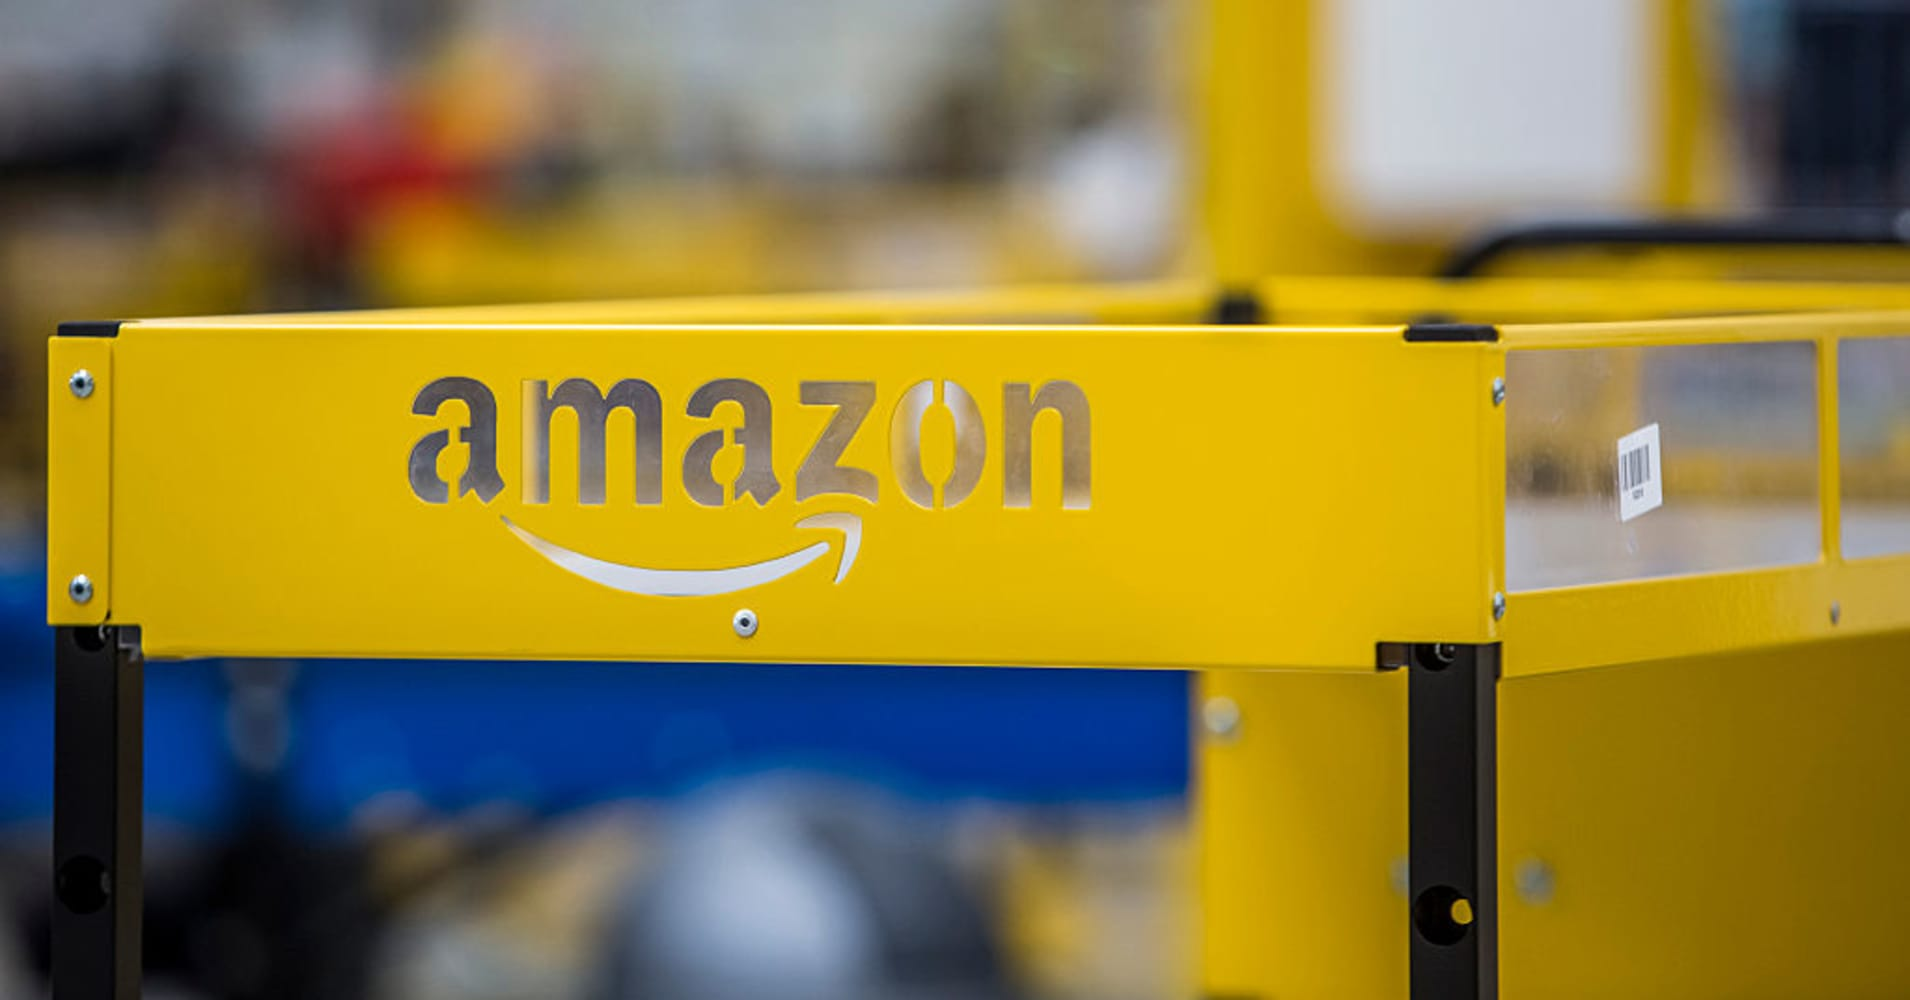 Amazon workers in Italy and Germany plan to strike Black Friday